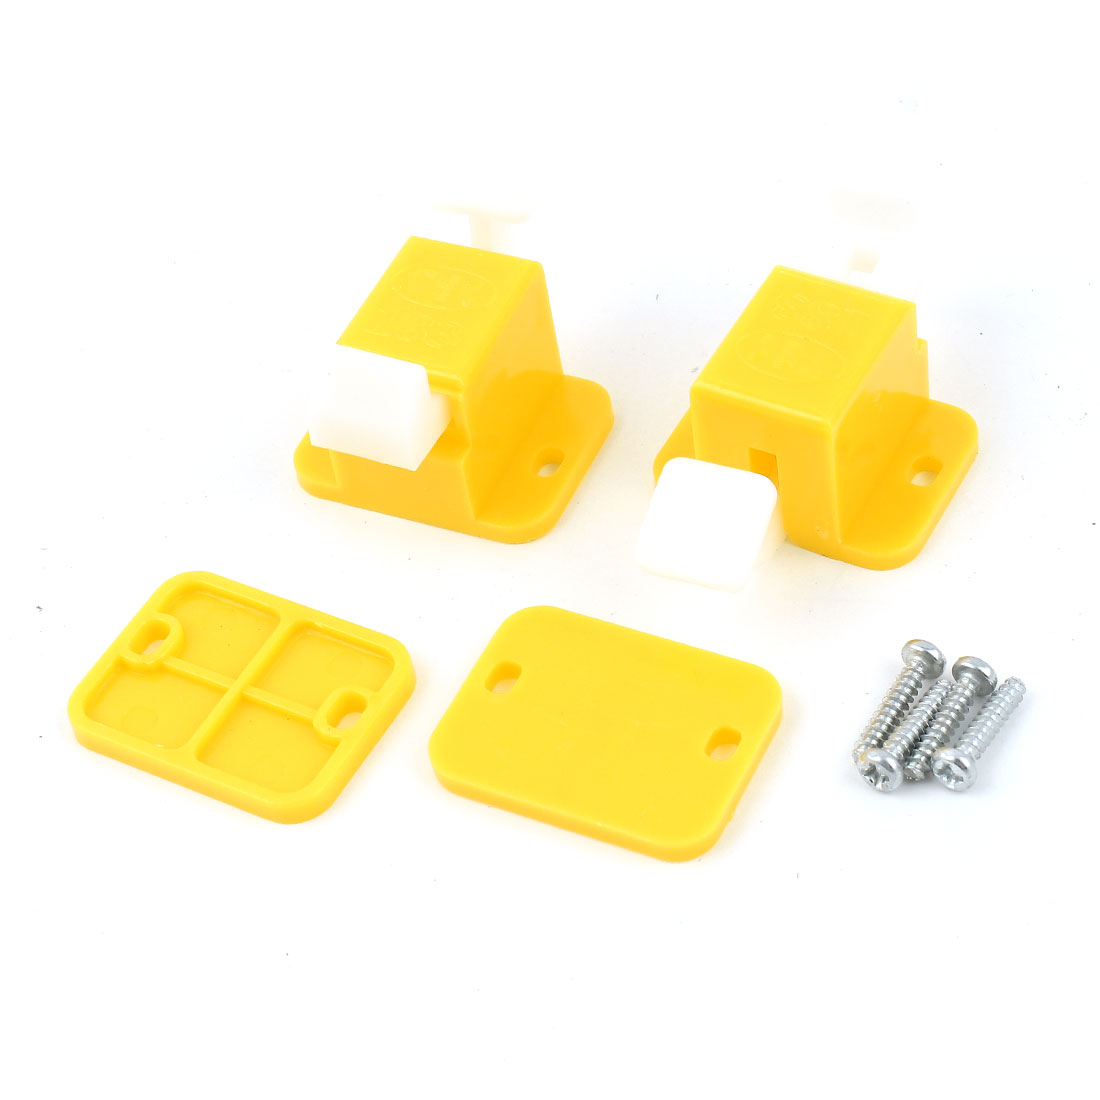 2 Pcs Plastic Prototype Test Fixture Jig Yellow White for PCB Board